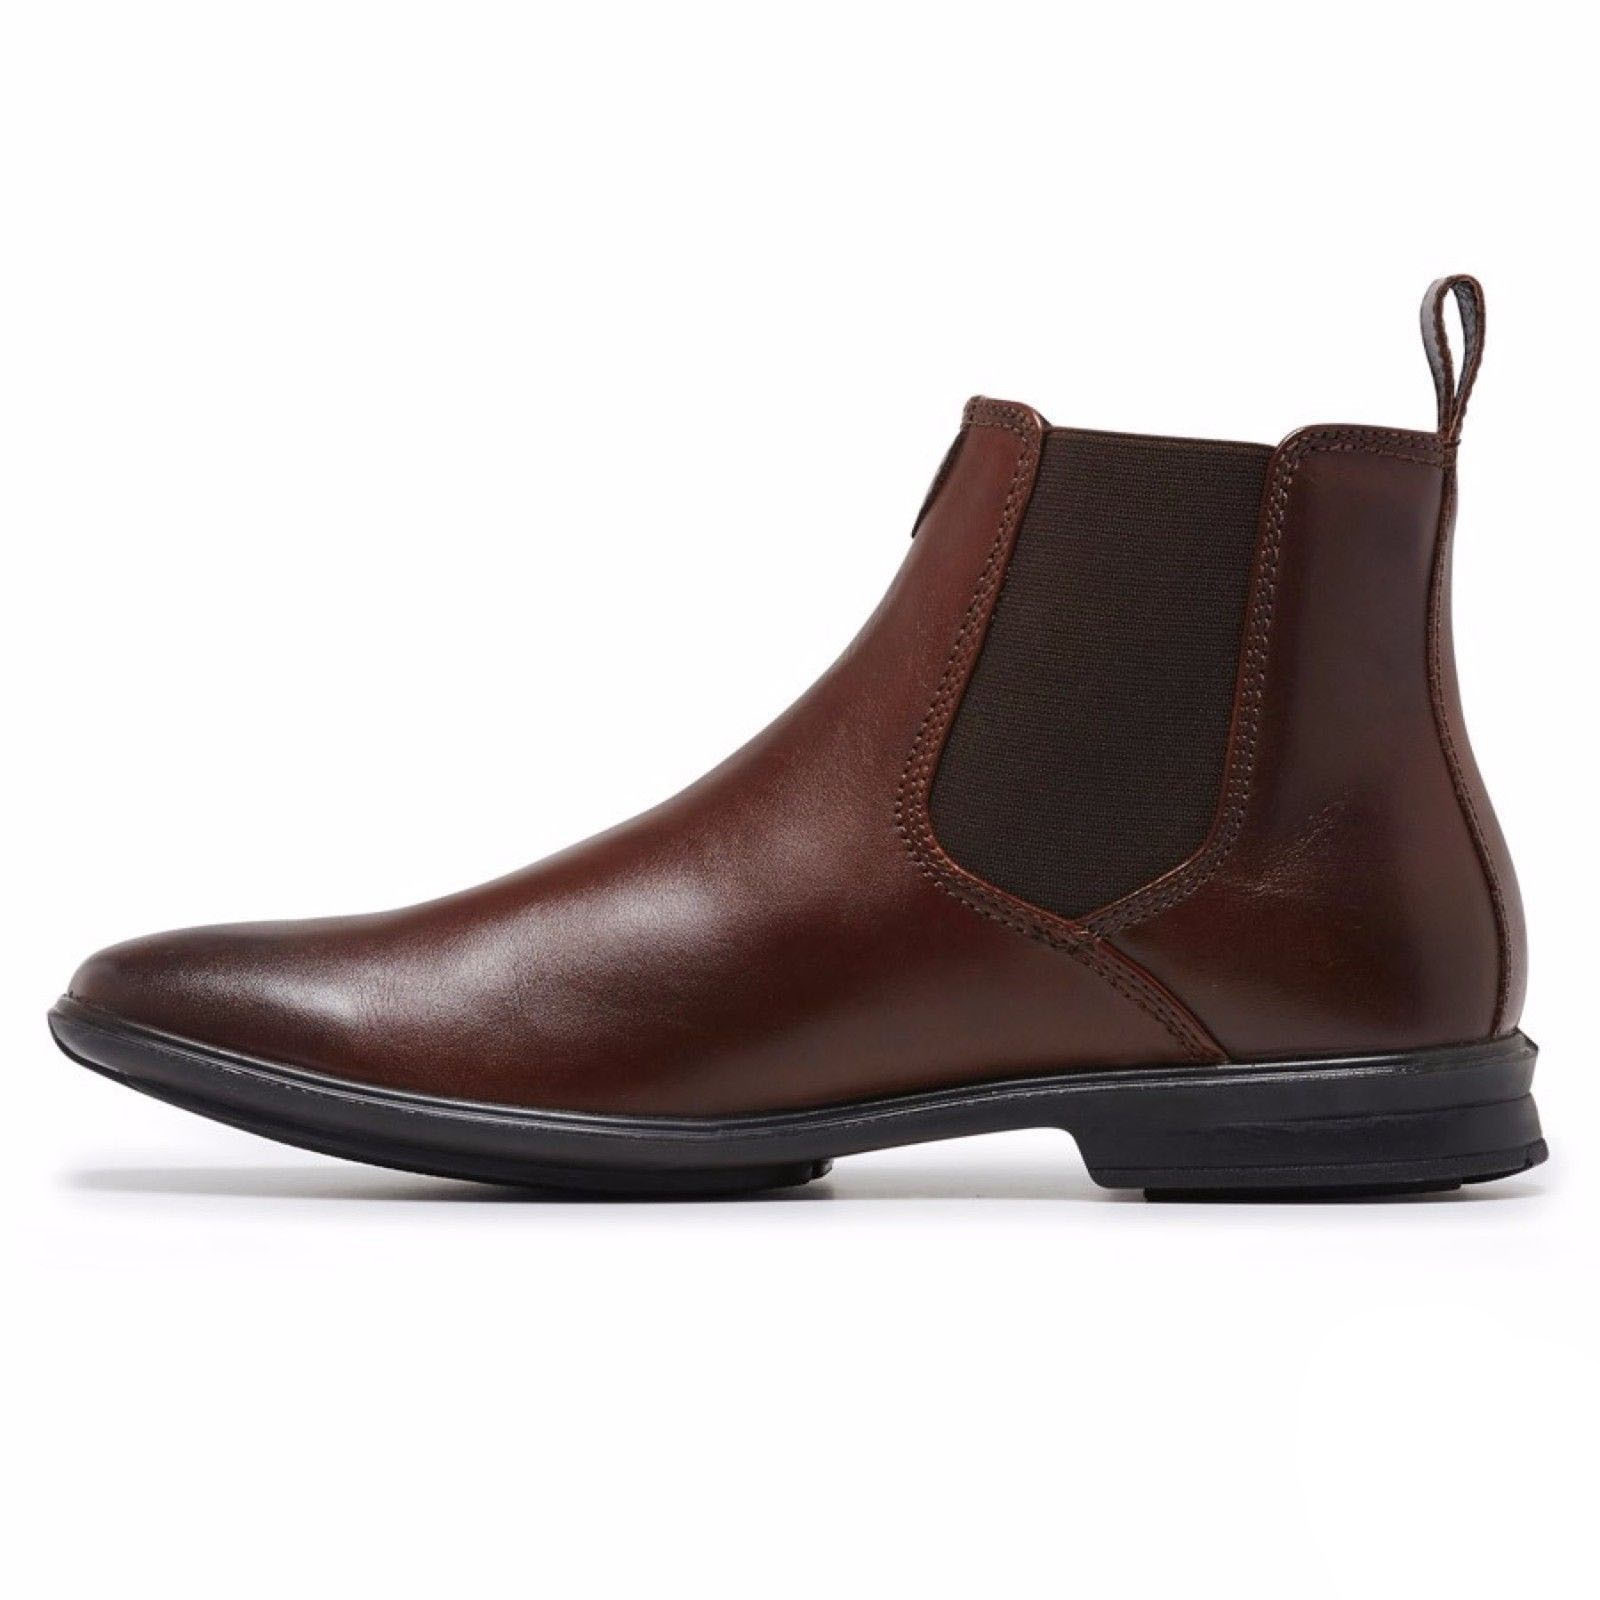 f2999c46f0c Men's HUSH PUPPIES CHELSEA Leather Boots Shoes Slip On Extra Wide Comfort  Work